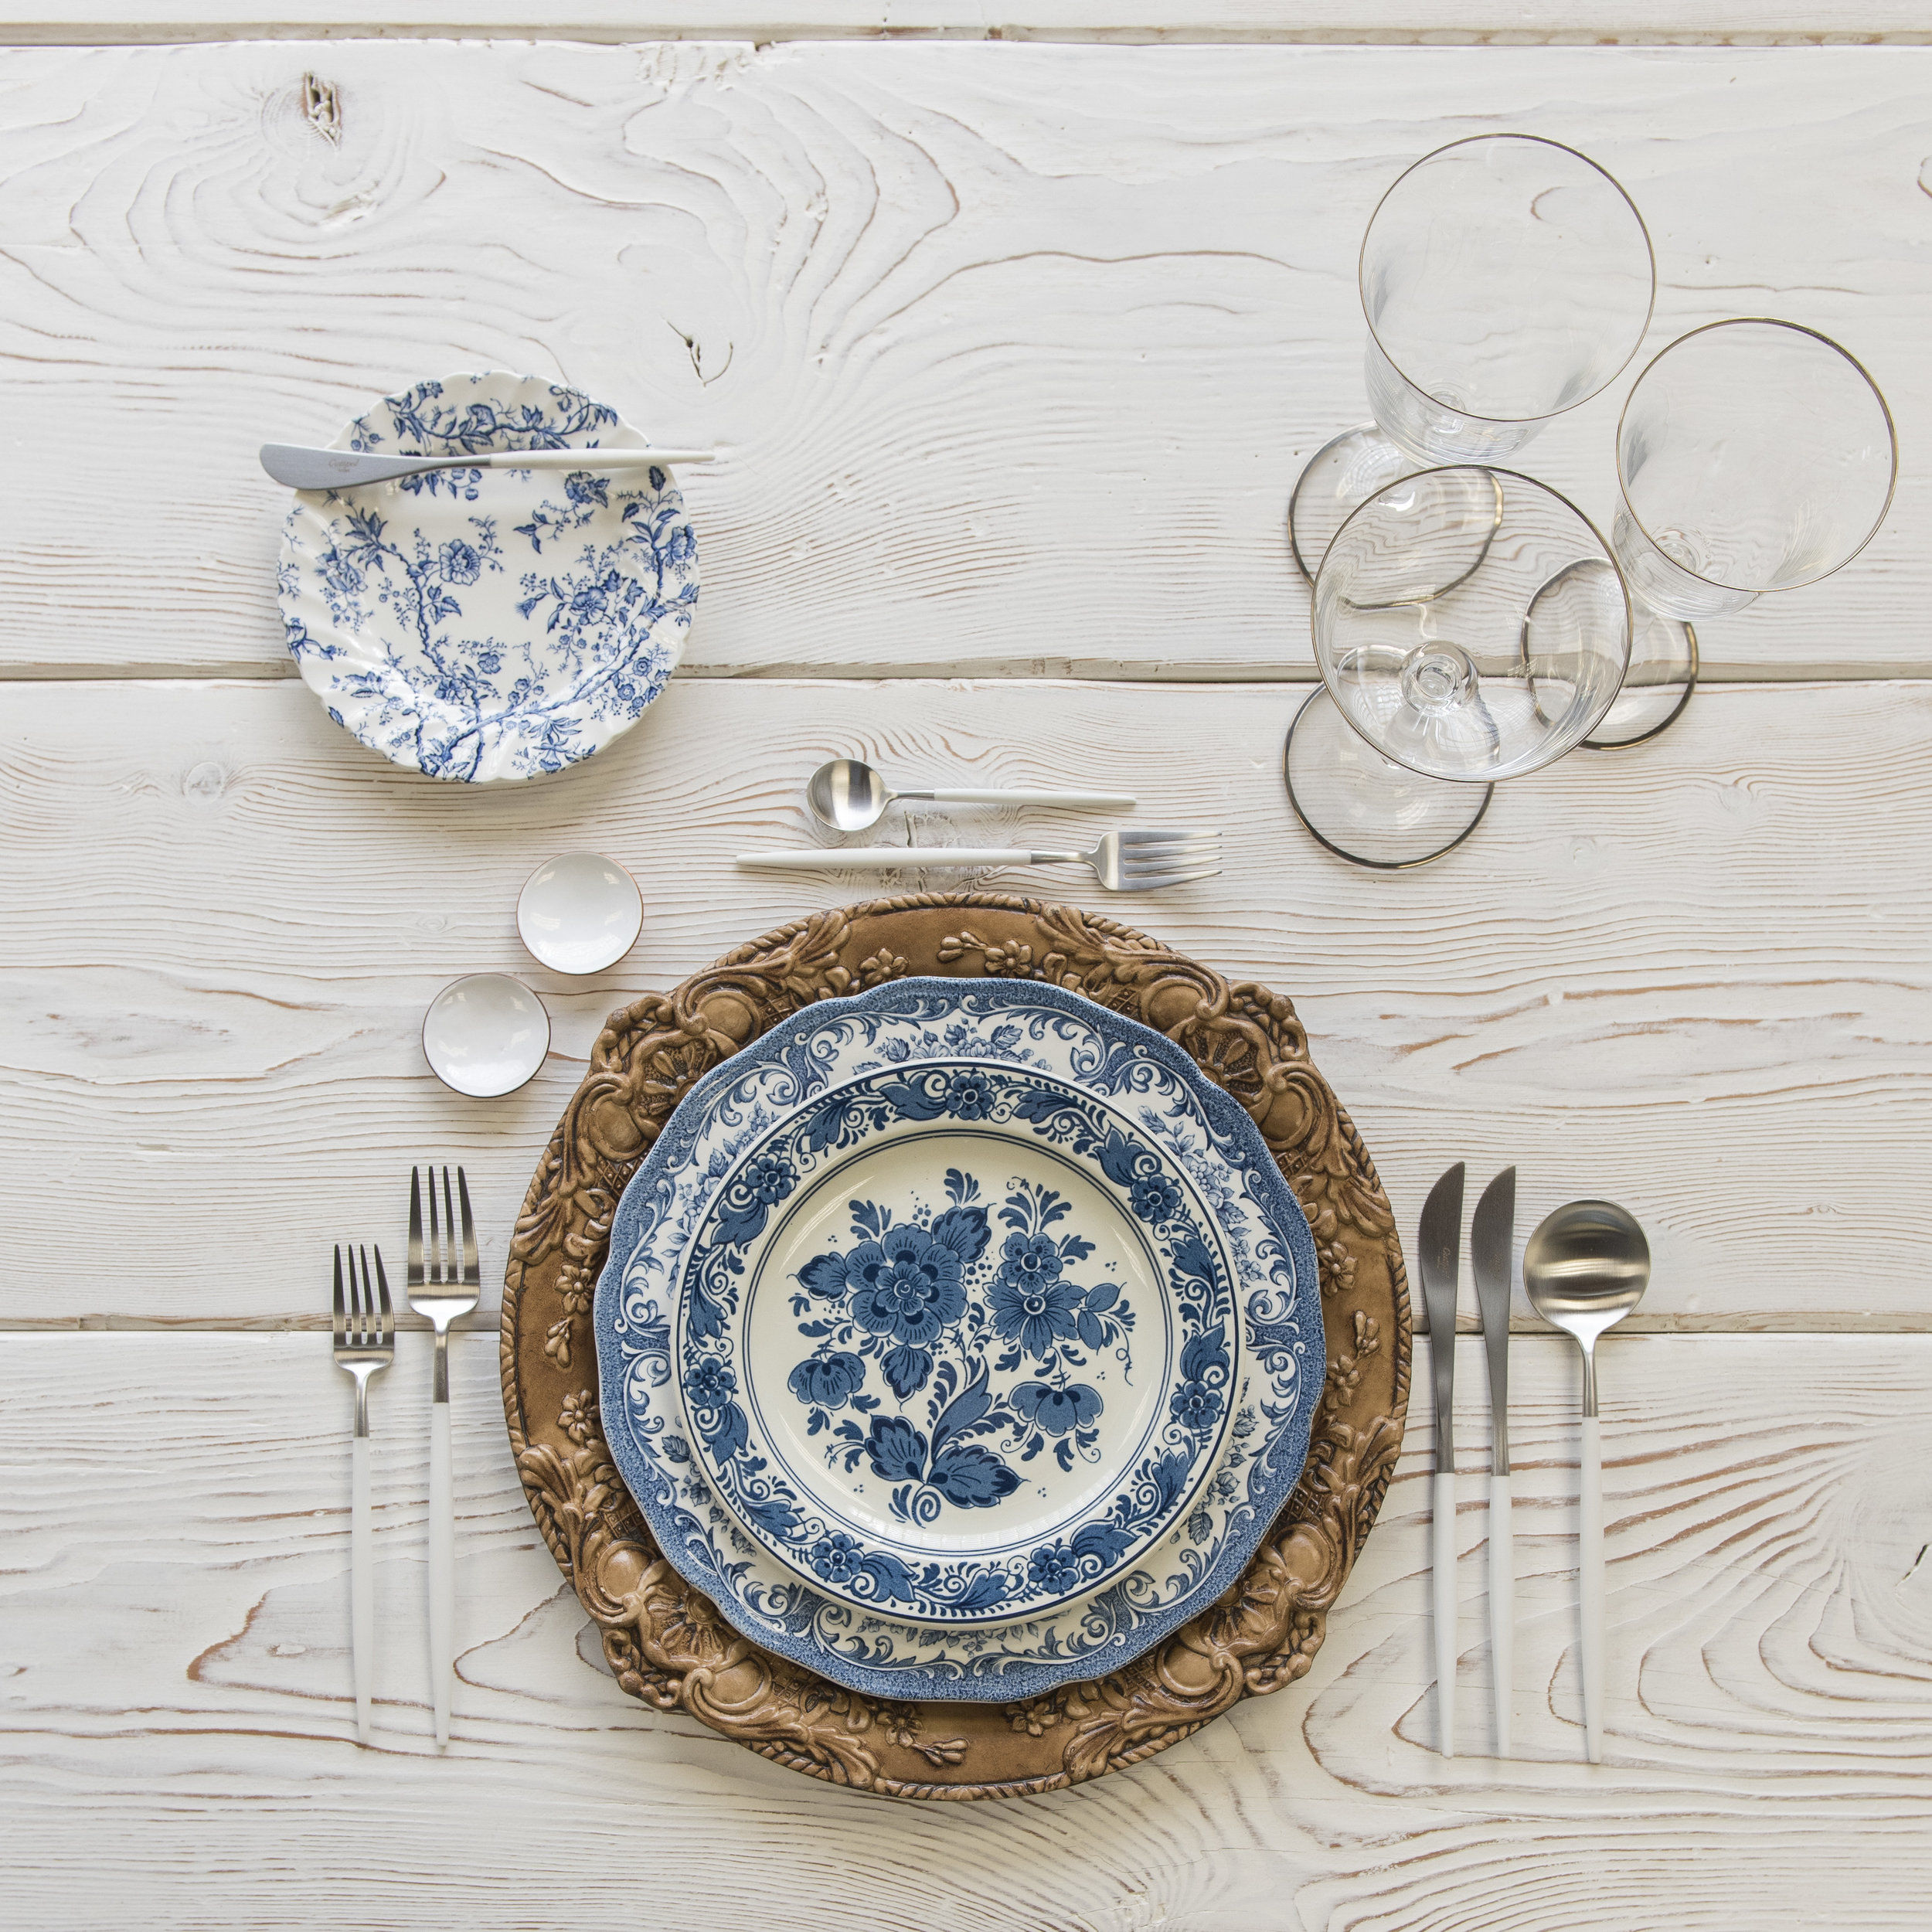 RENT: Verona Chargers in Walnut + Blue Garden Collection Vintage China + Goa Flatware in Brushed Steel/White + Chloe Platinum Rimmed Stemware + White Enamel Salt Cellars  SHOP: Verona Chargers in Walnut + Goa Flatware in Brushed Steel/White + Chloe Platinum Rimmed Stemware + White Enamel Salt Cellars